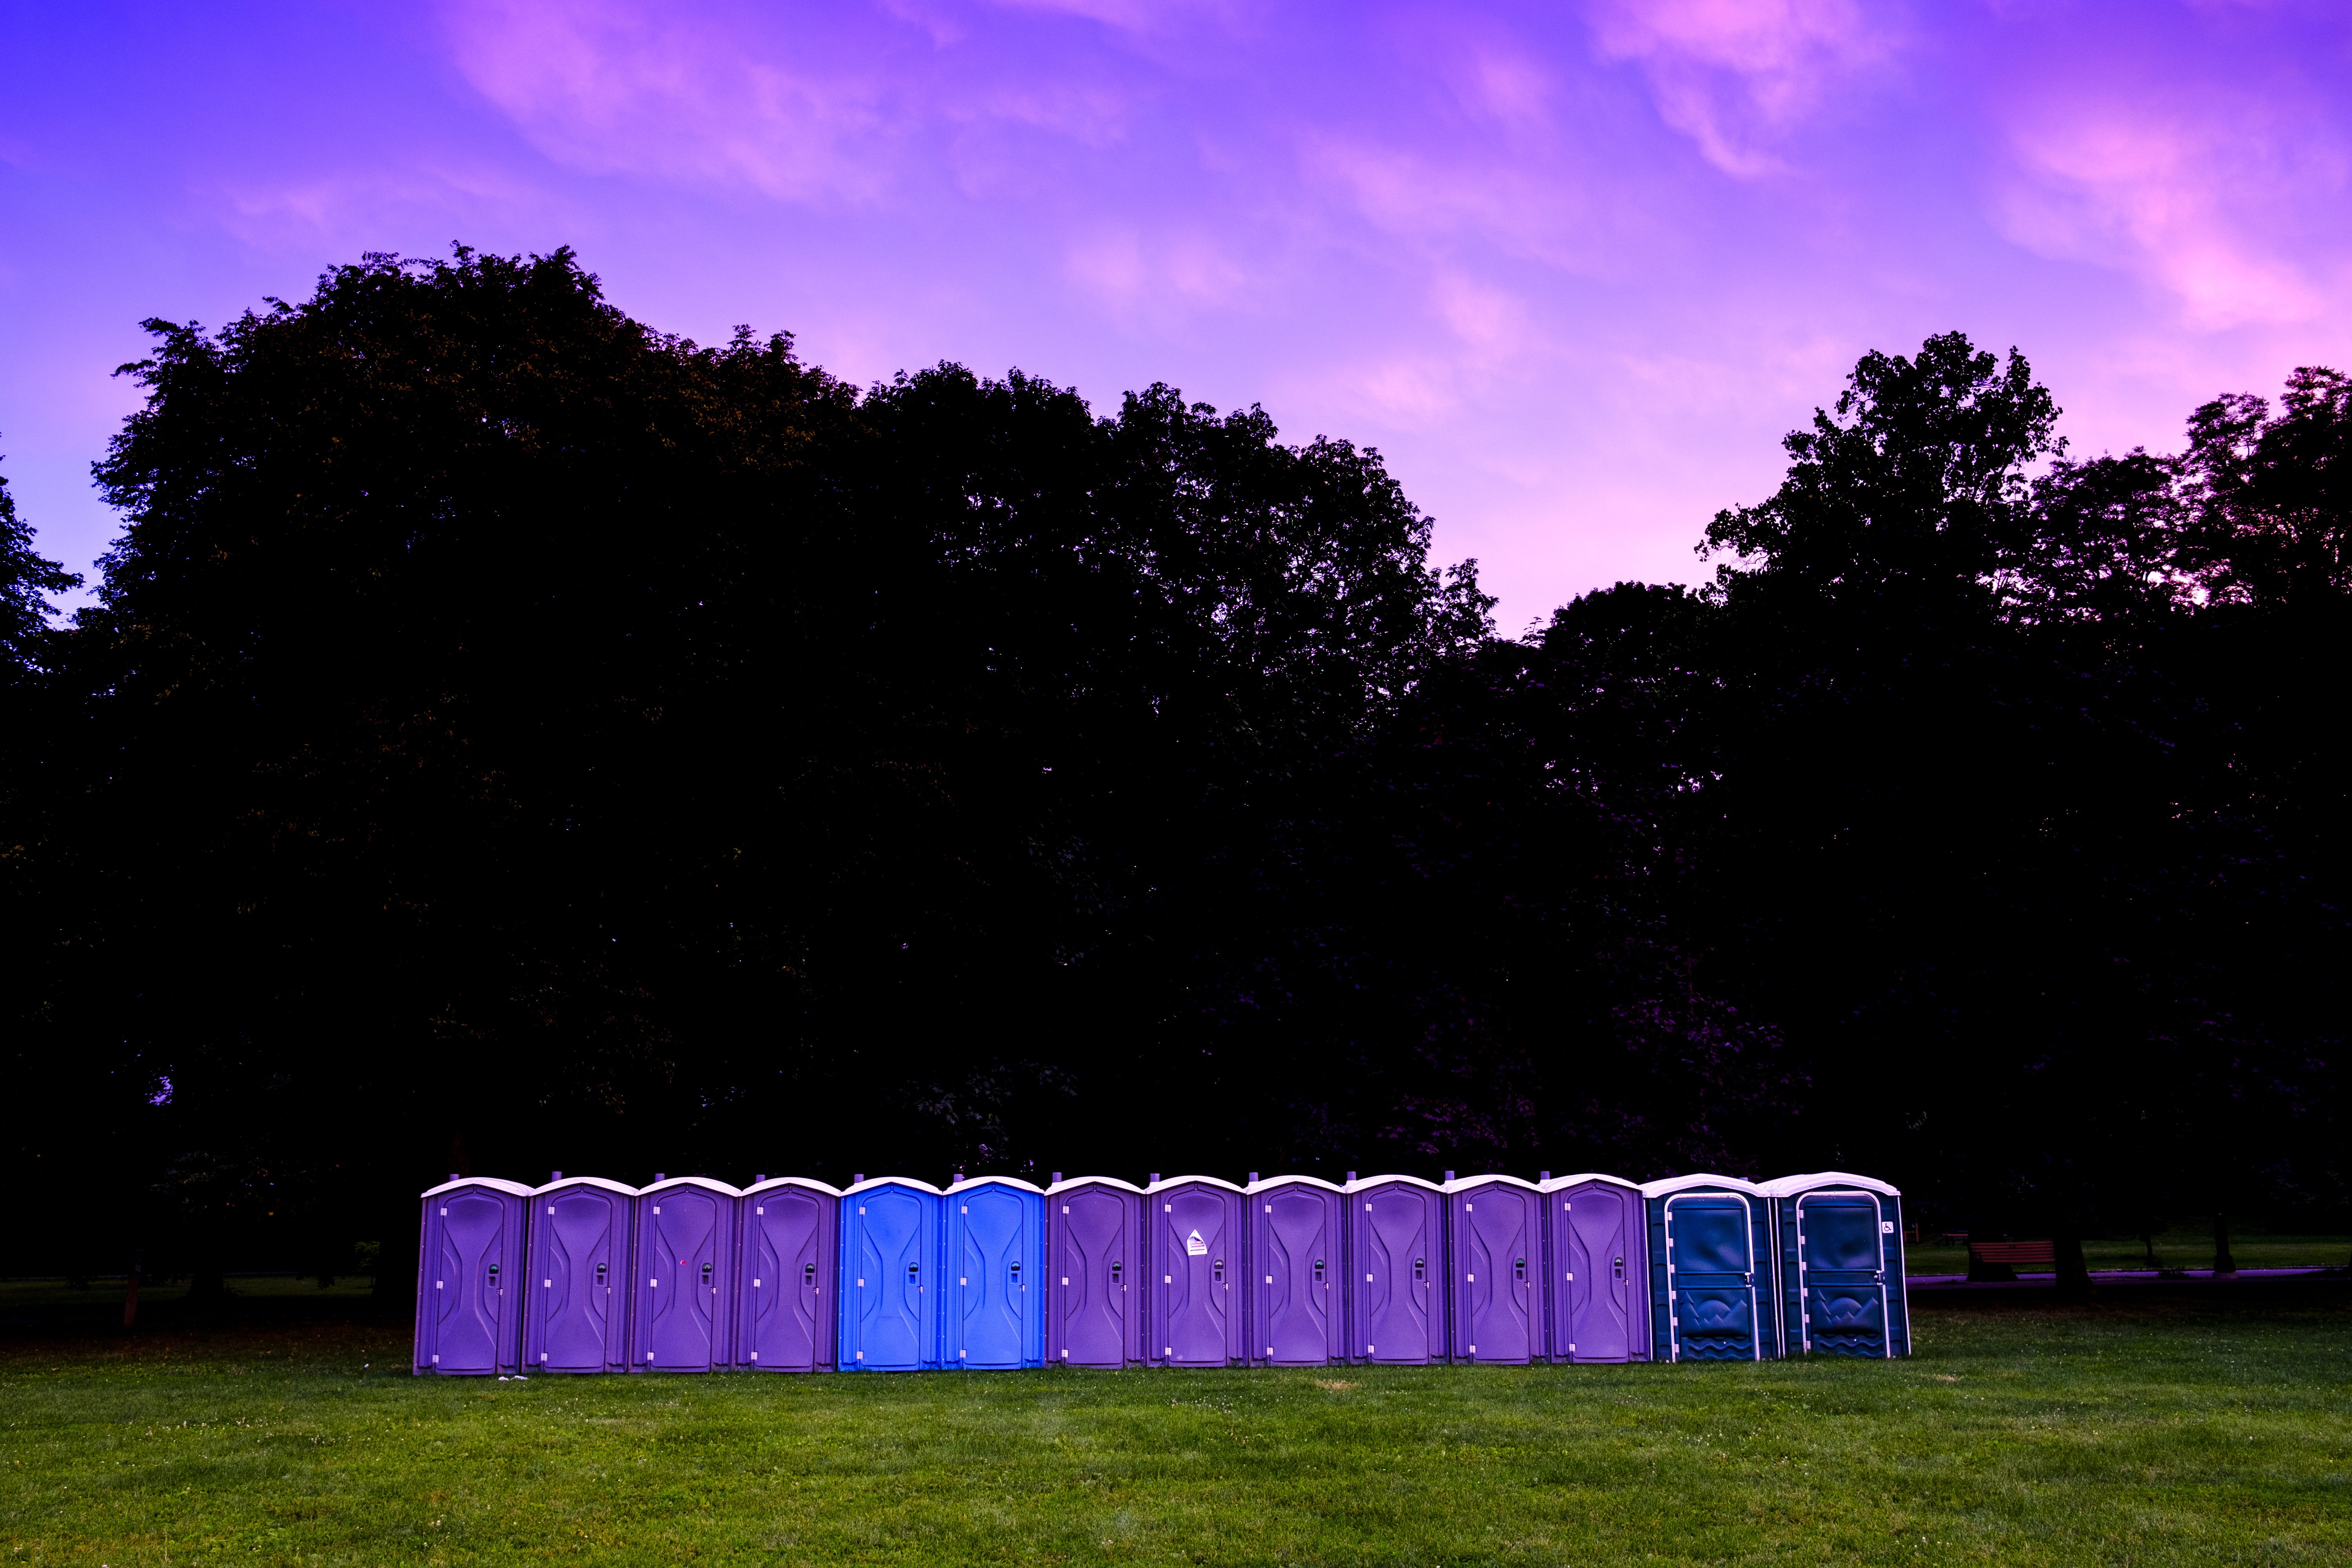 photography of portable toilet on field